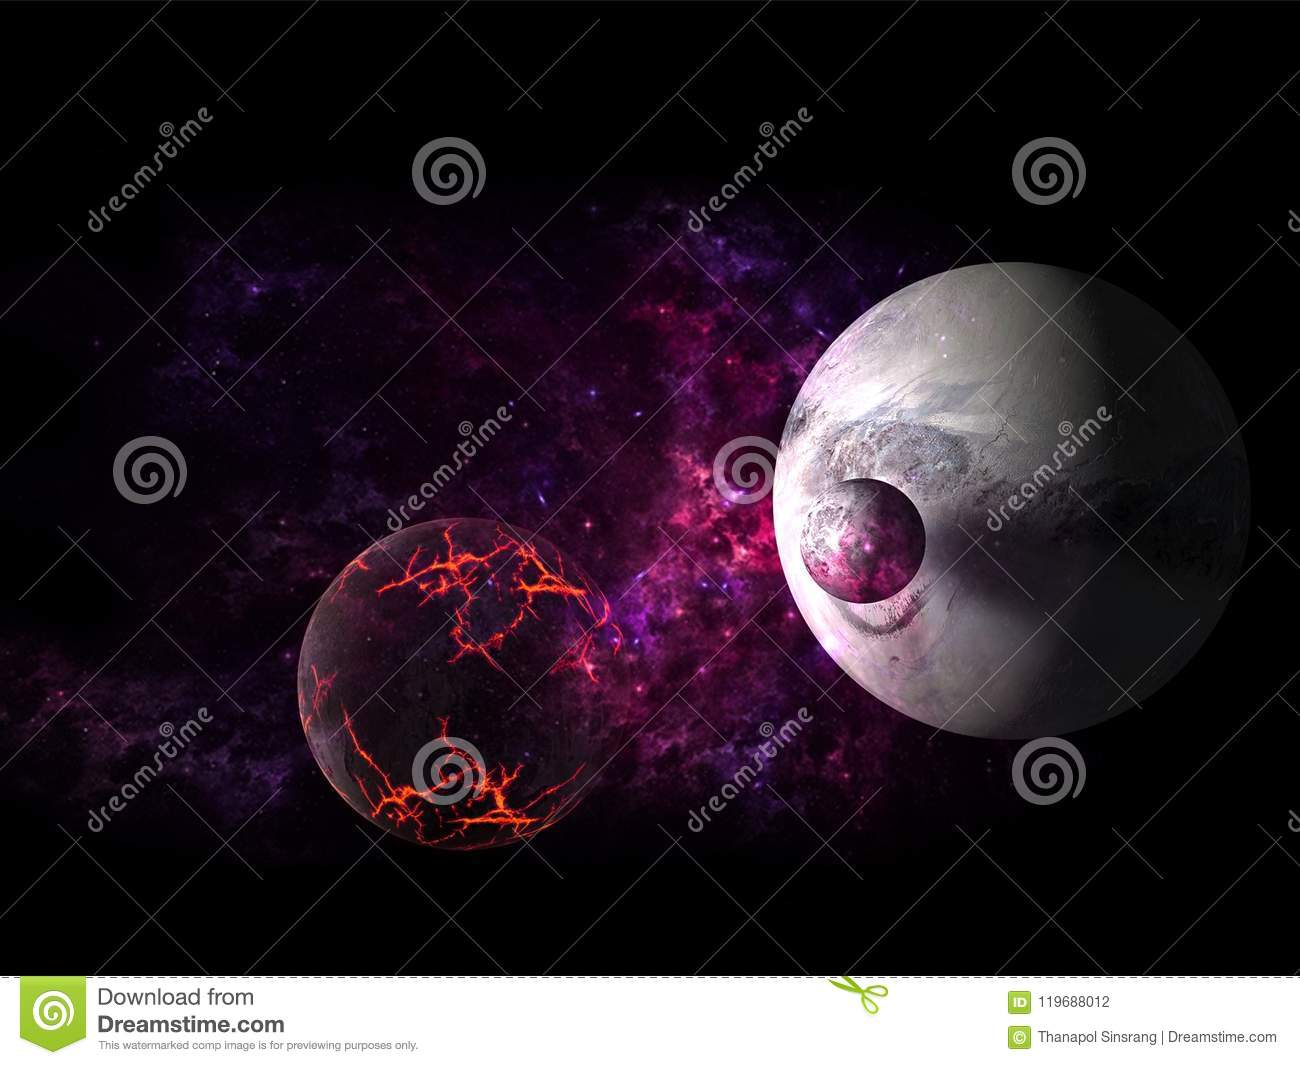 Planets And Galaxies Science Fiction Wallpaper Beauty Of Deep Space